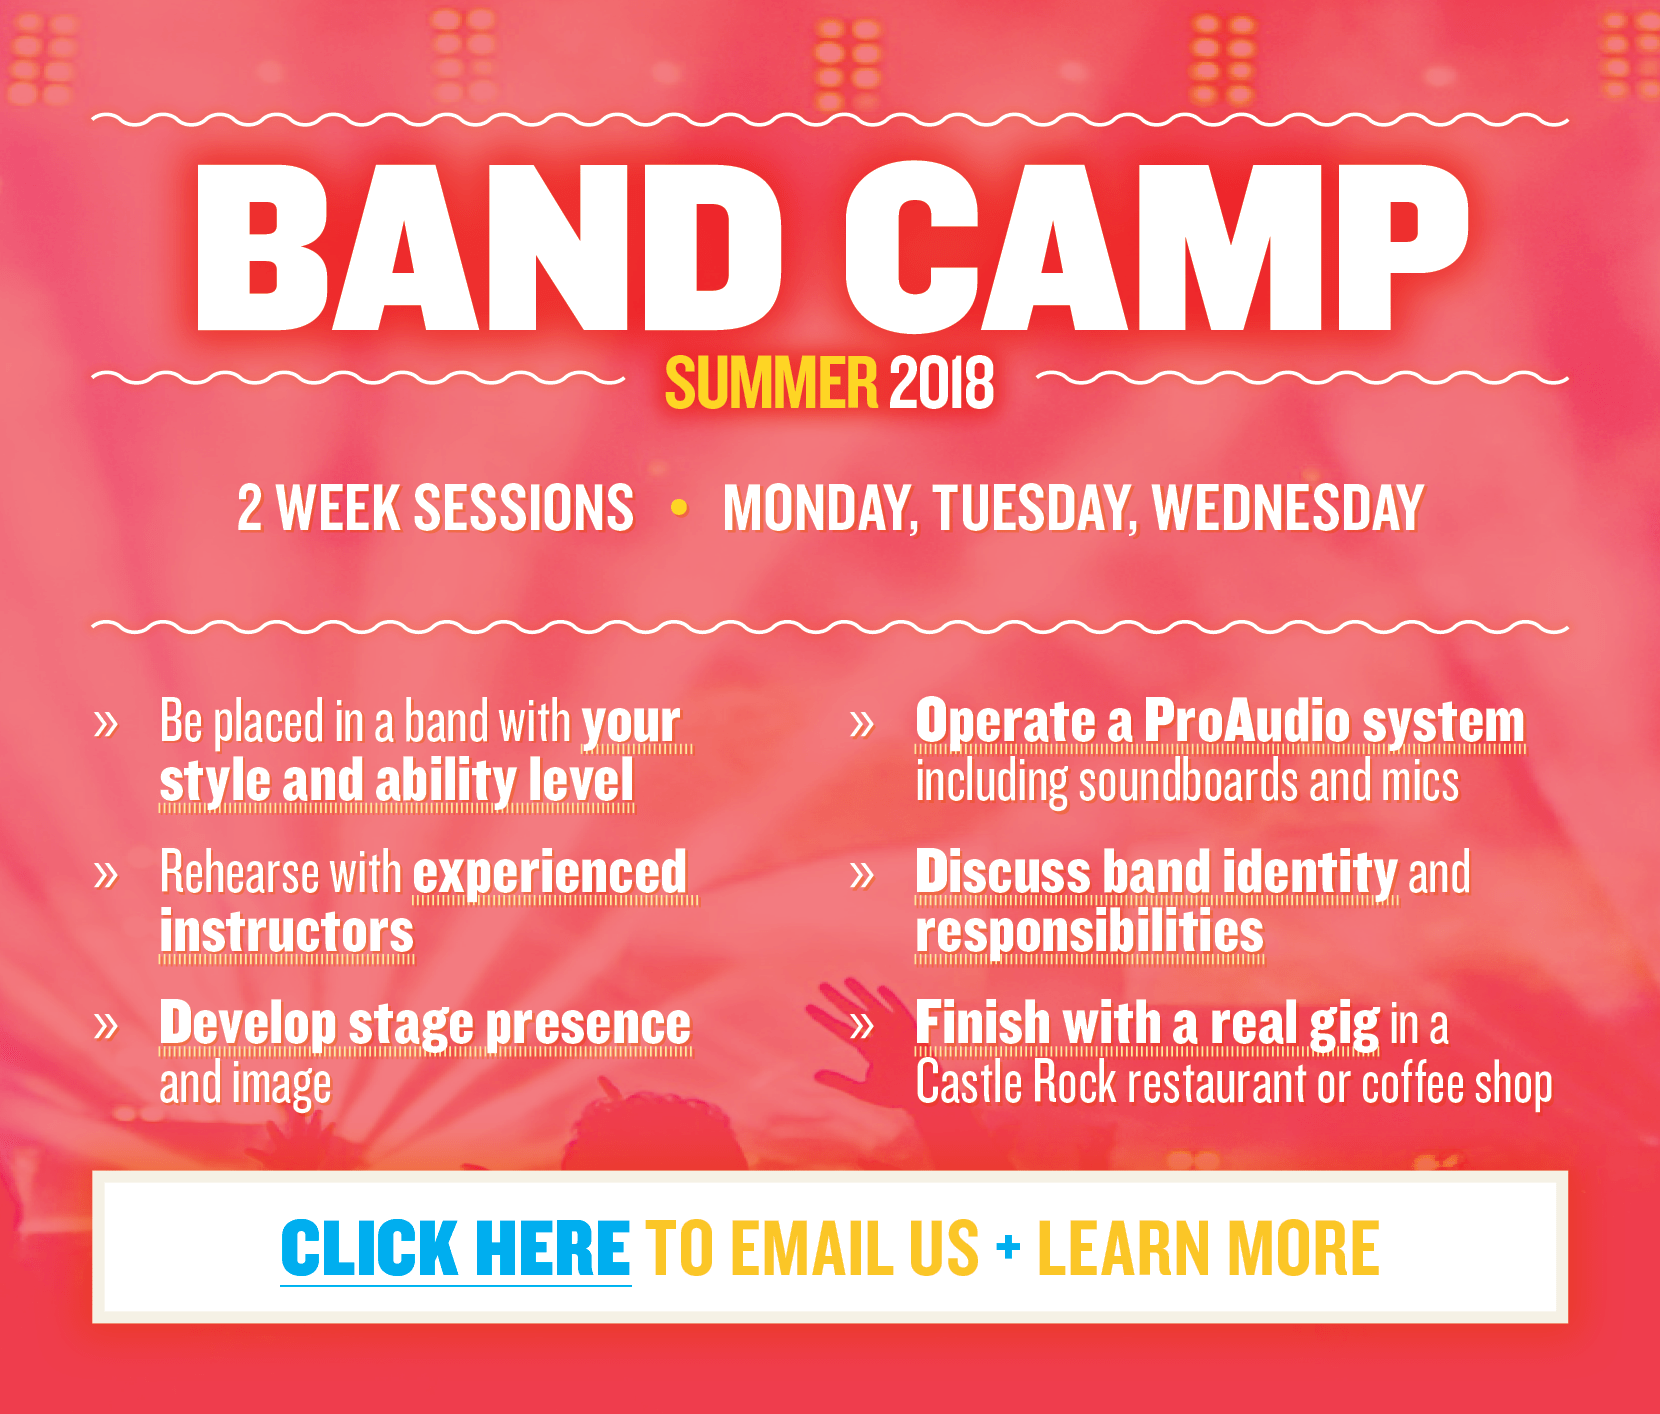 Band Camp (Summer 2018)  |  2 Week Sessions  |  Monday, Tuesday, Wednesday